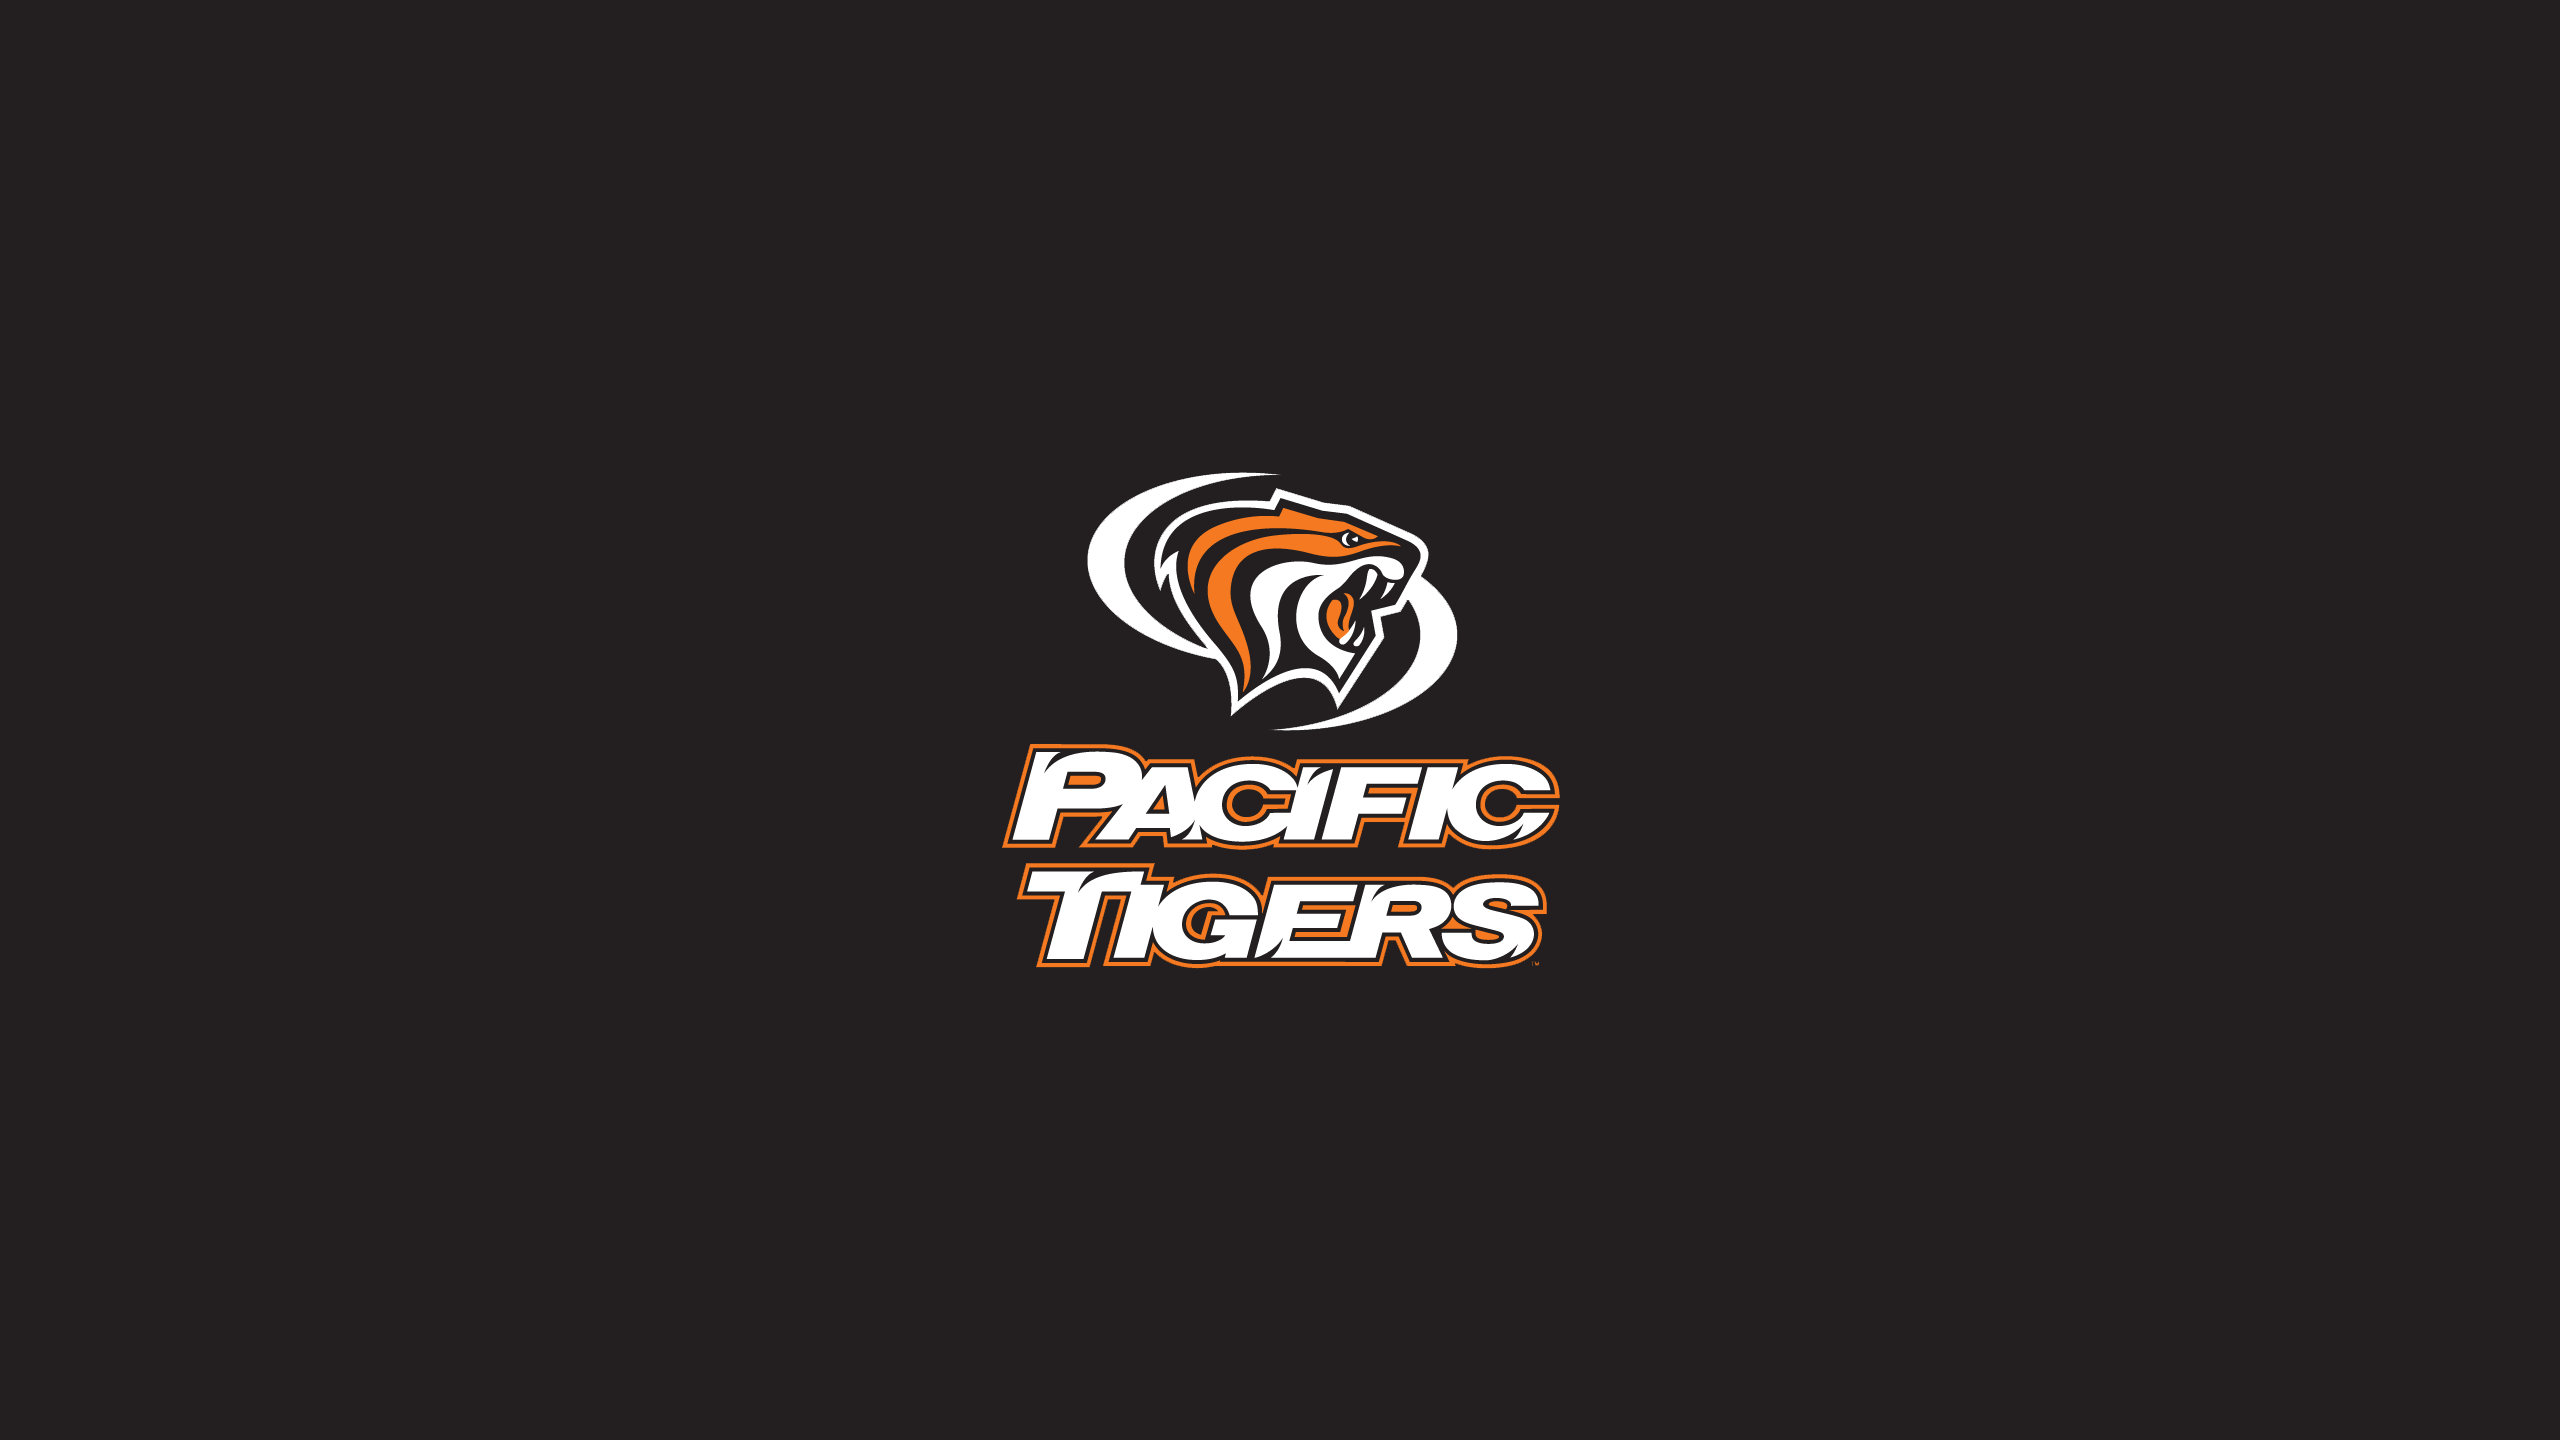 University of the Pacific Tigers